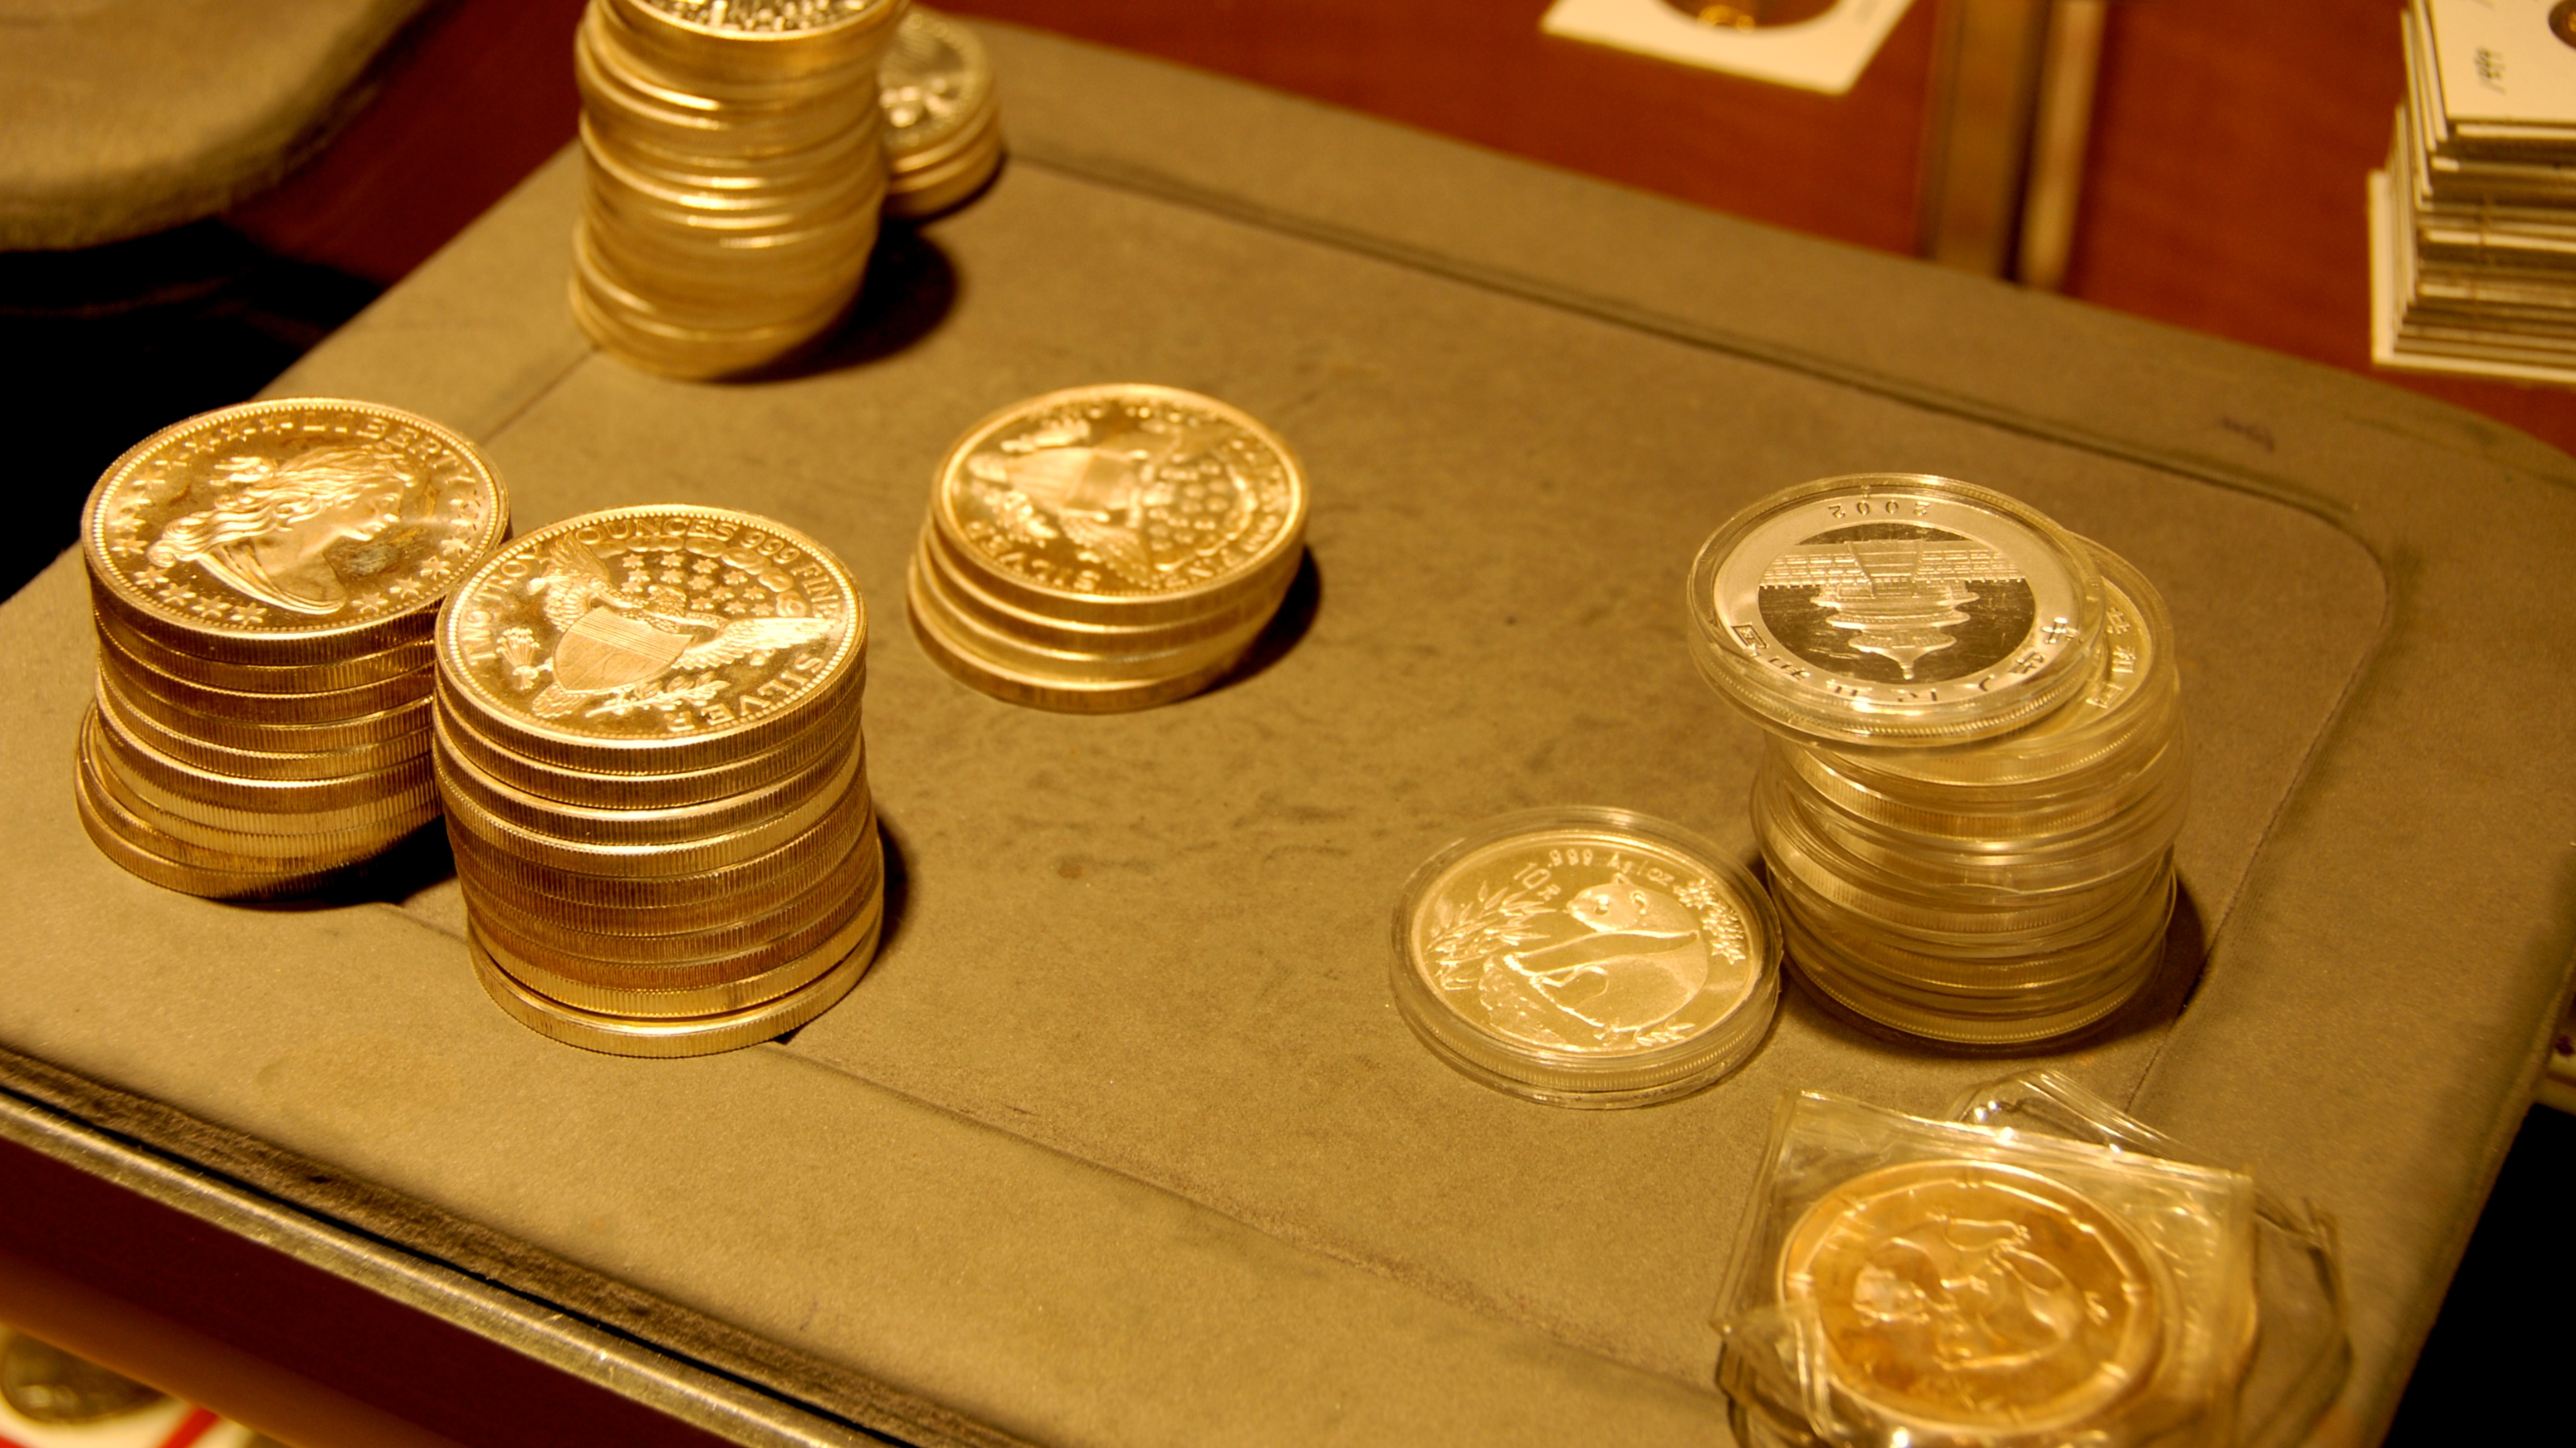 How To Properly Collect Gold Coins To Achieve The Maximum